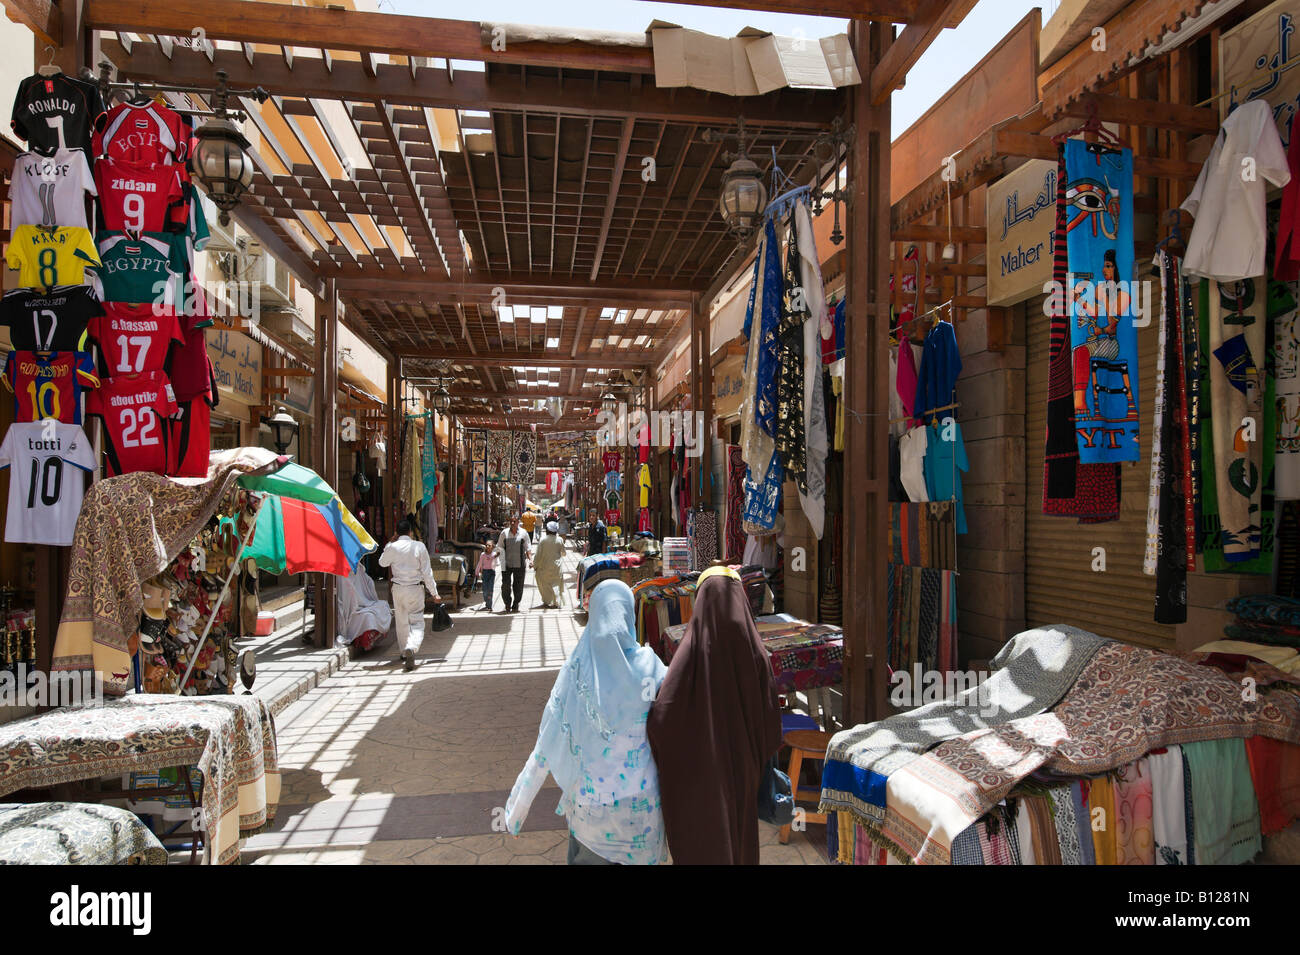 Shops in the bazaar, Sharia al Souk, Luxor, Nile Valley, Egypt - Stock Image